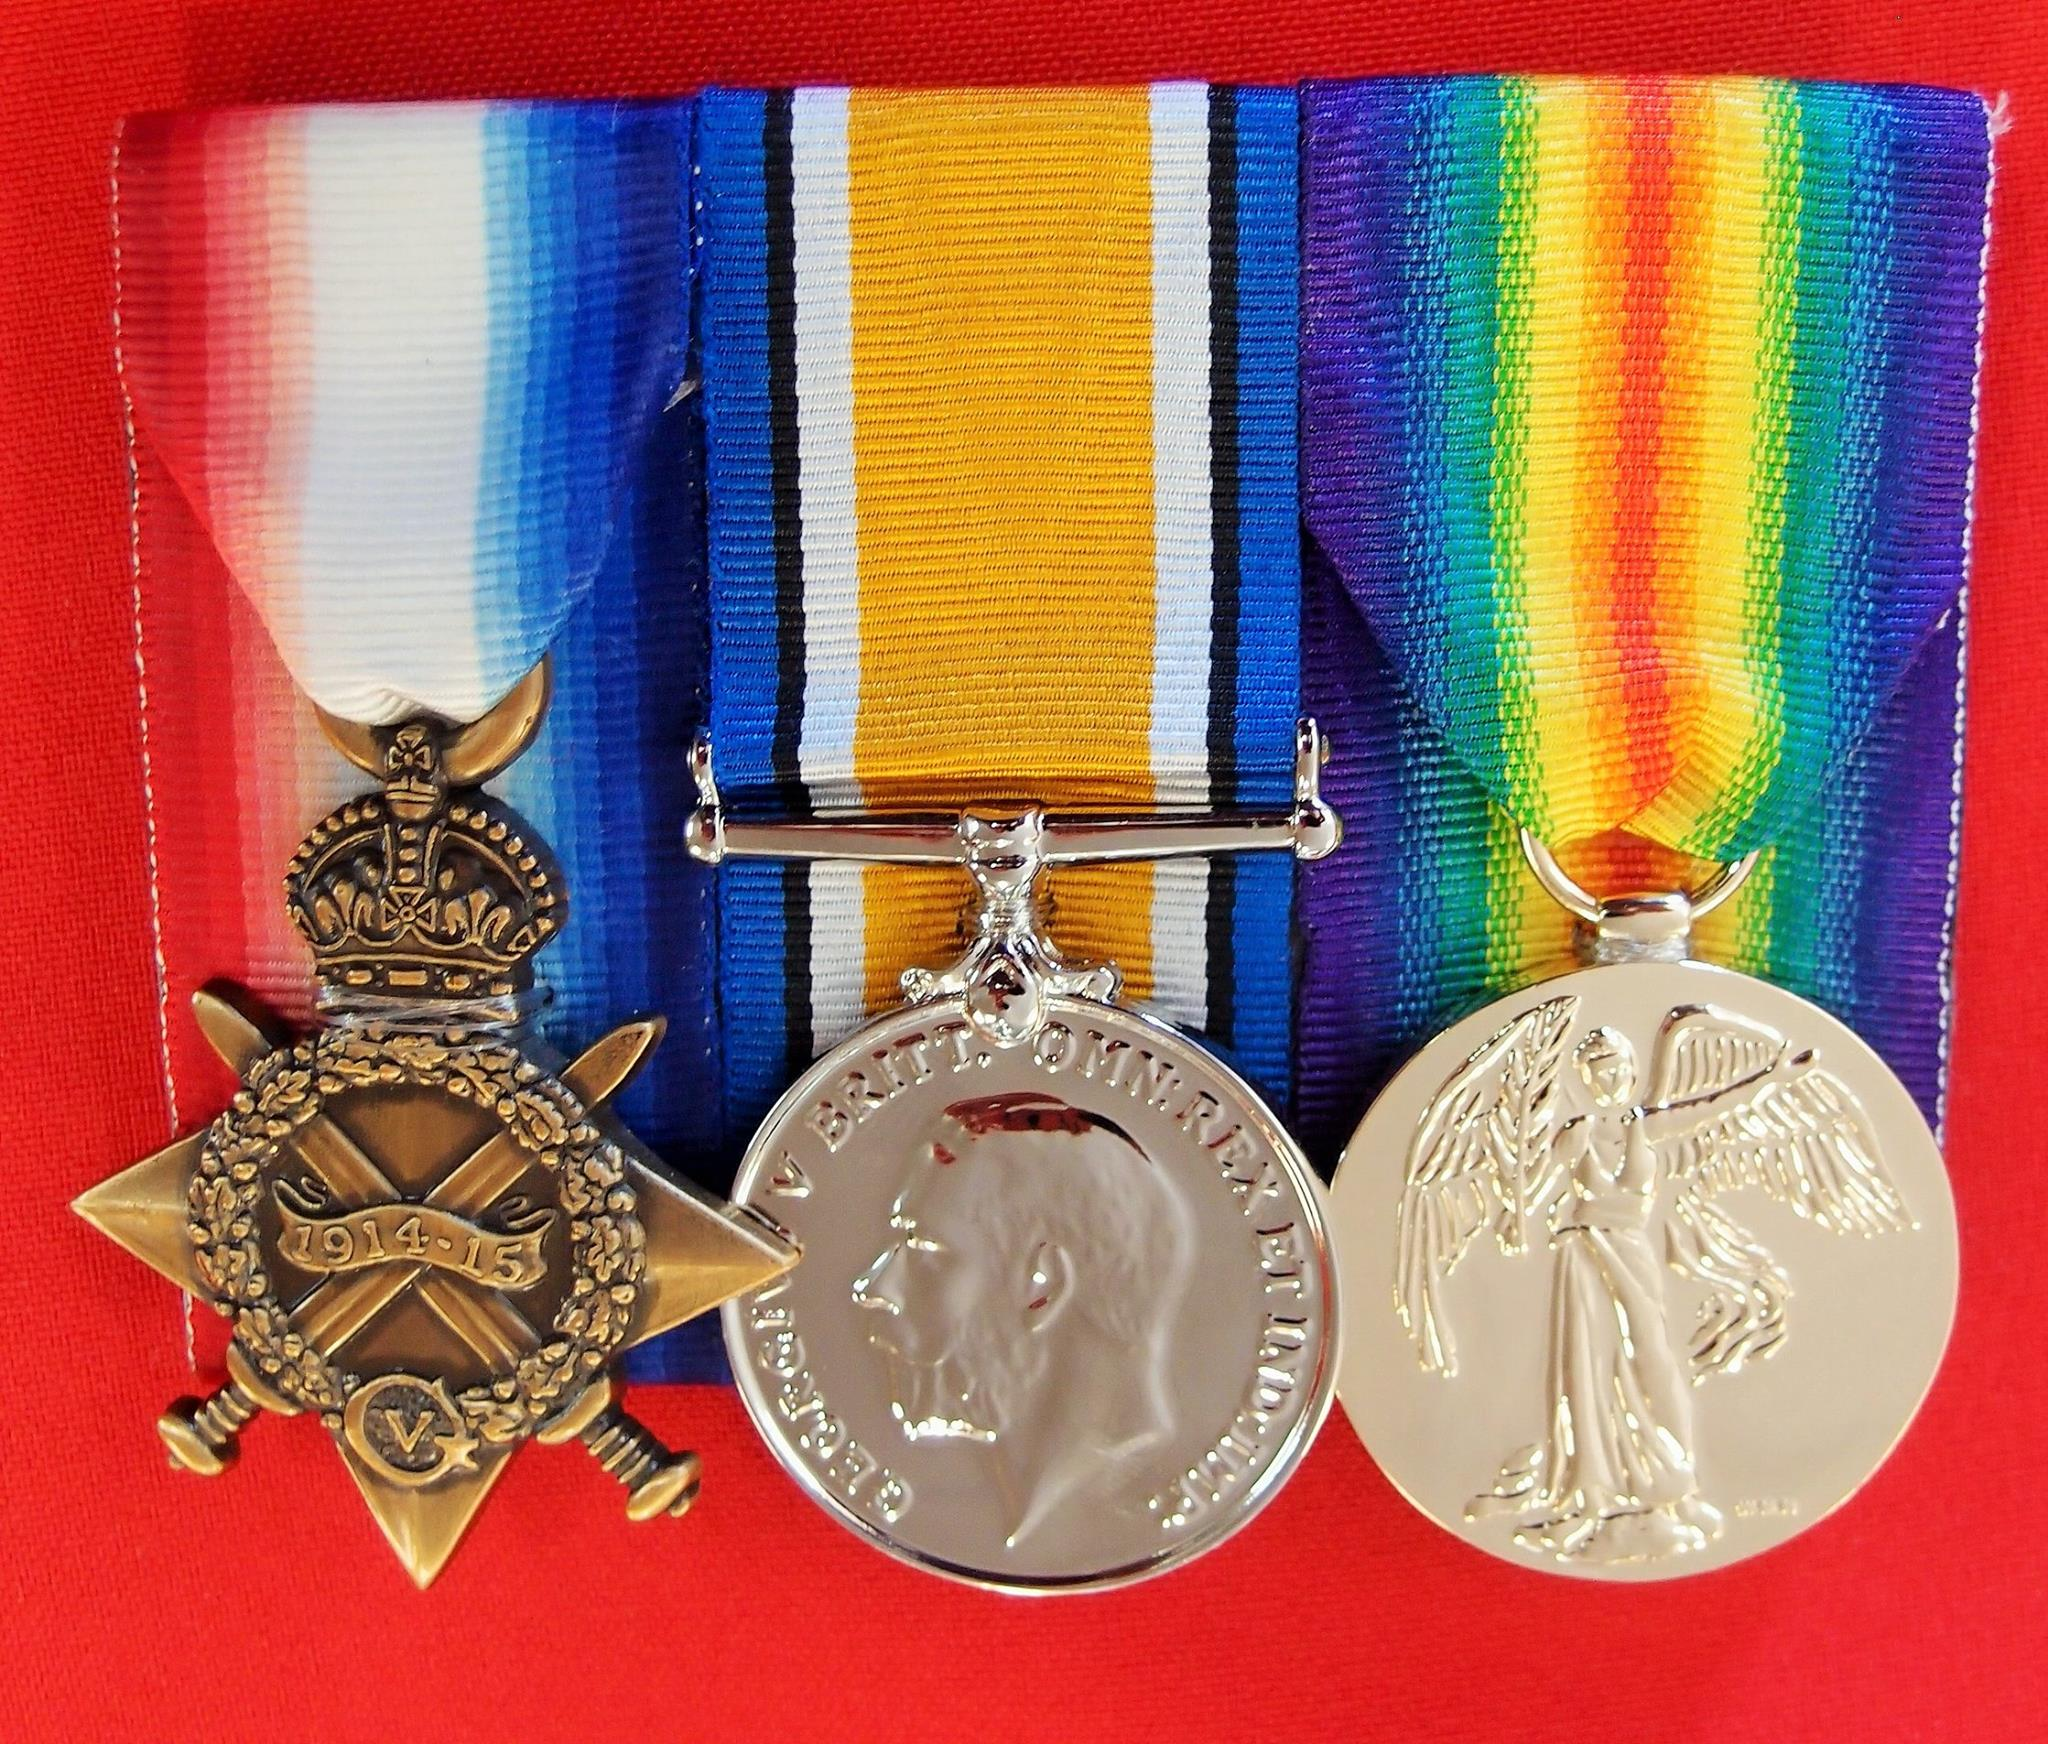 REPLICA WW1 MEDAL 1915 TRIO FOR AUSTRALIA UK CANADA NZ COMMONWEALTH MOUNTED